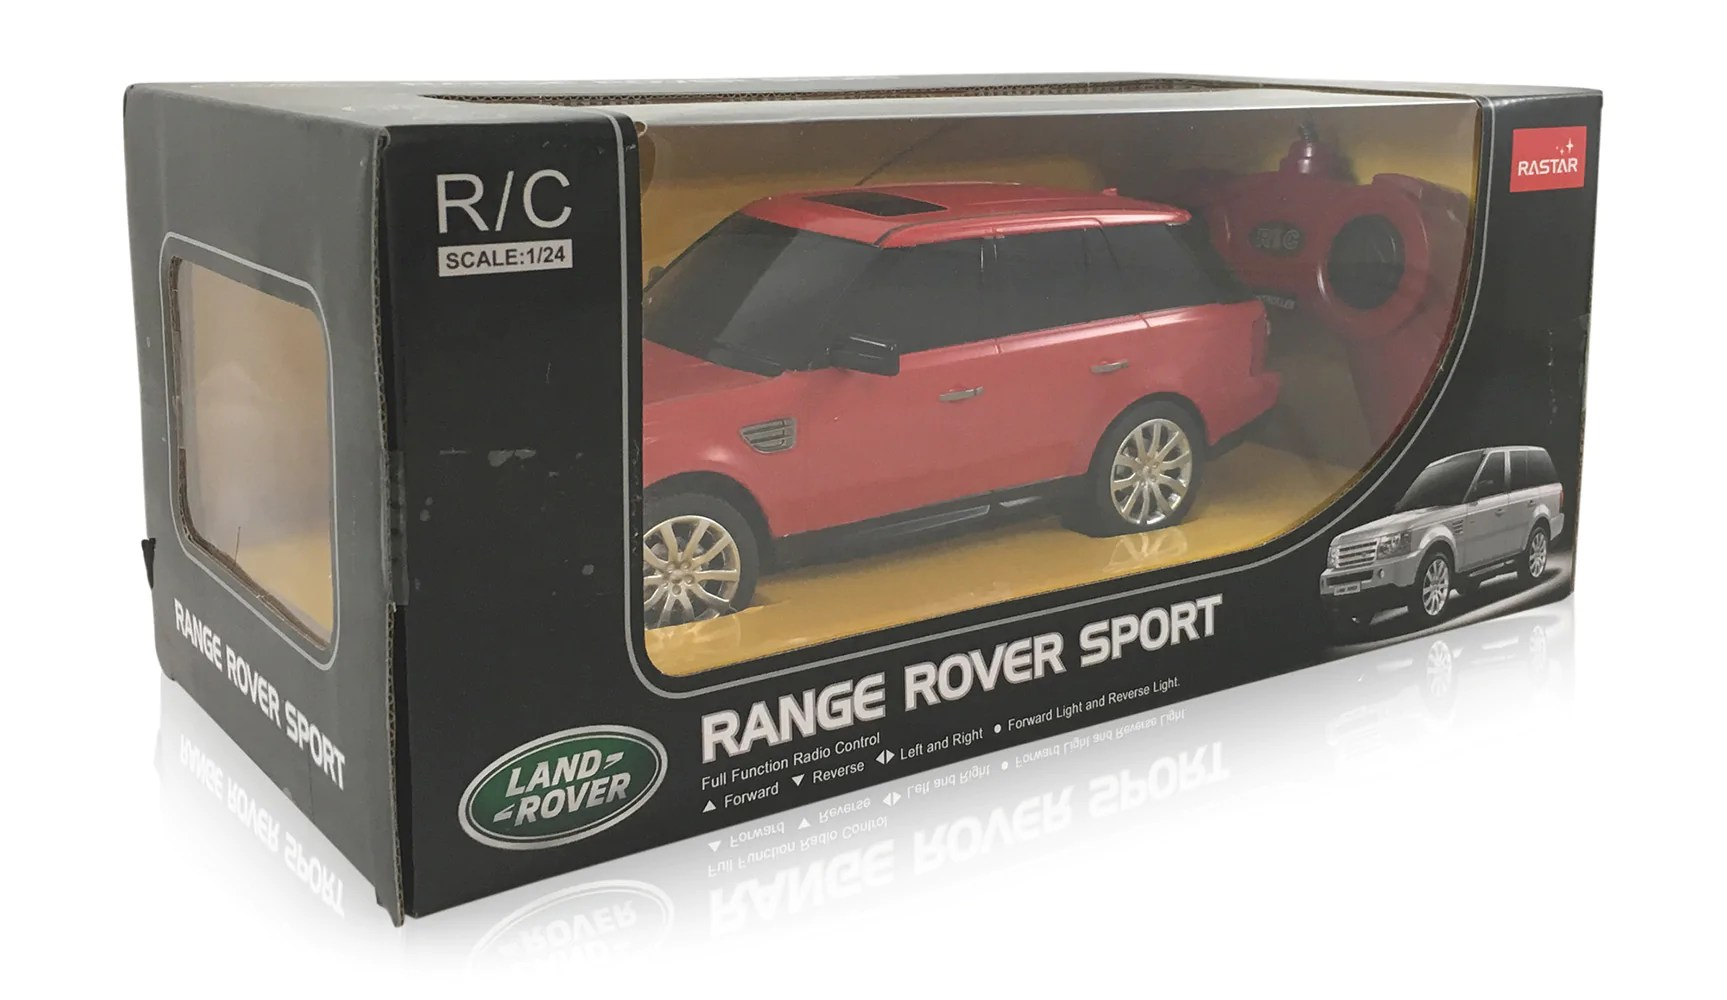 medium resolution of land rover range rover sport red 1 24 scale radio controlled model car by rastar